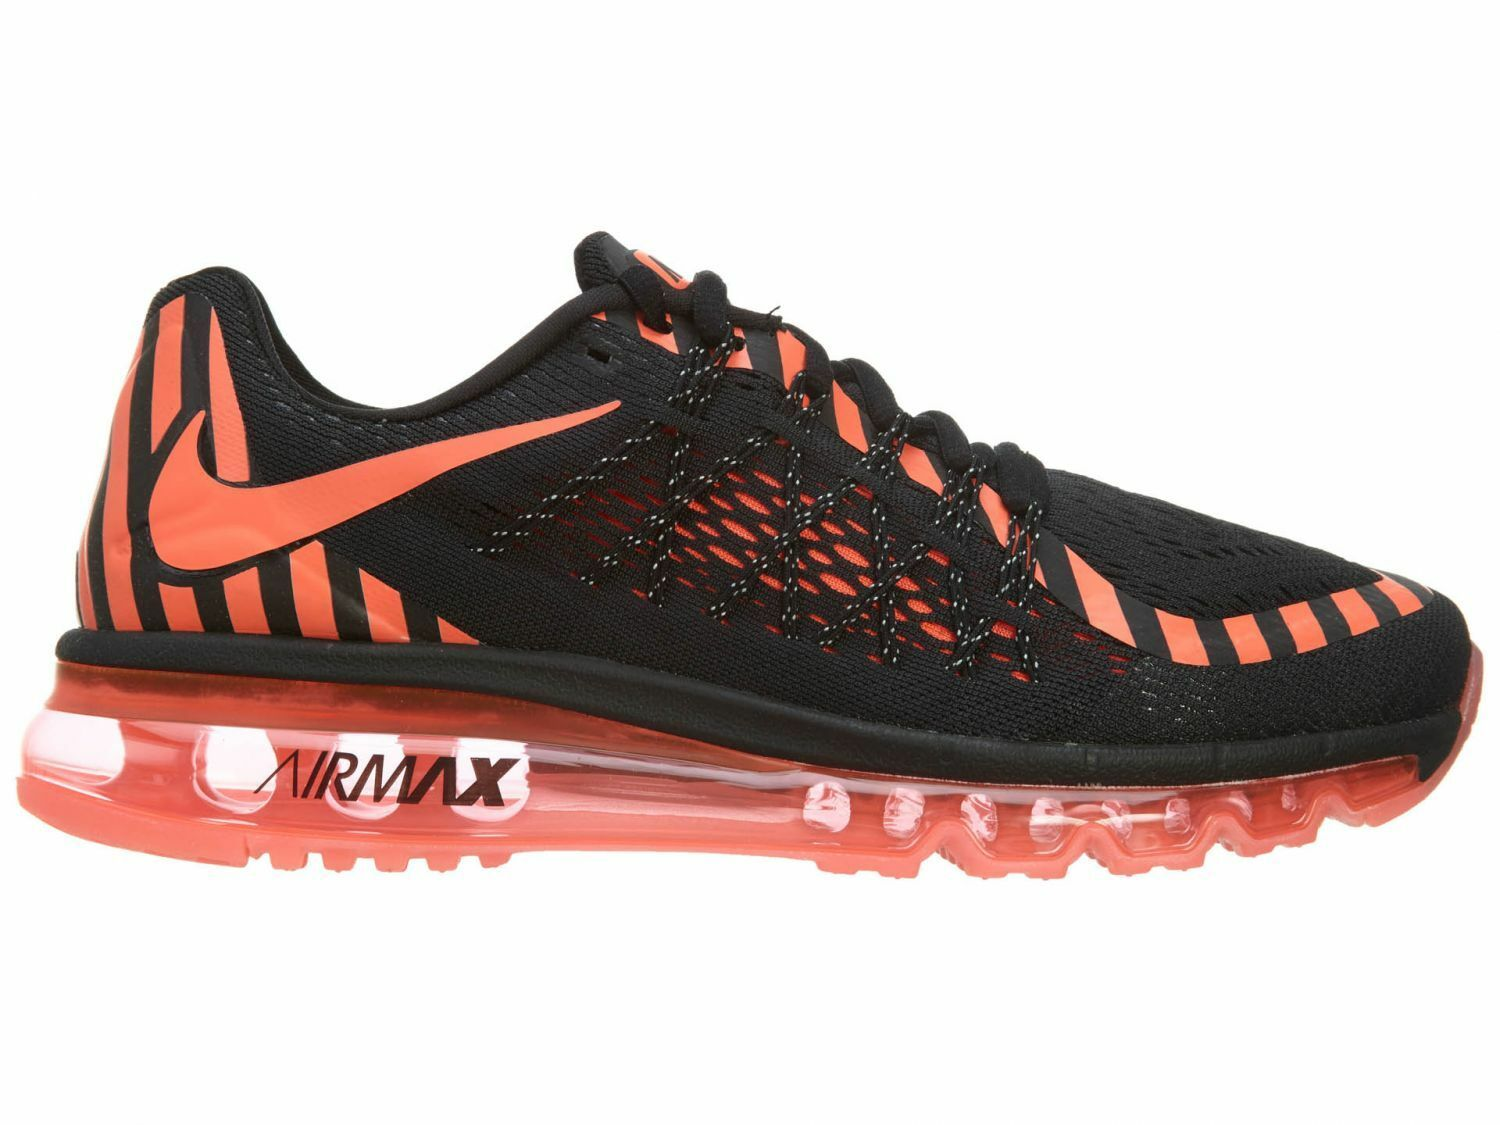 Nike Air Max 2015 NR Womens 746683-011 Black Lava Mesh Running shoes Size 10